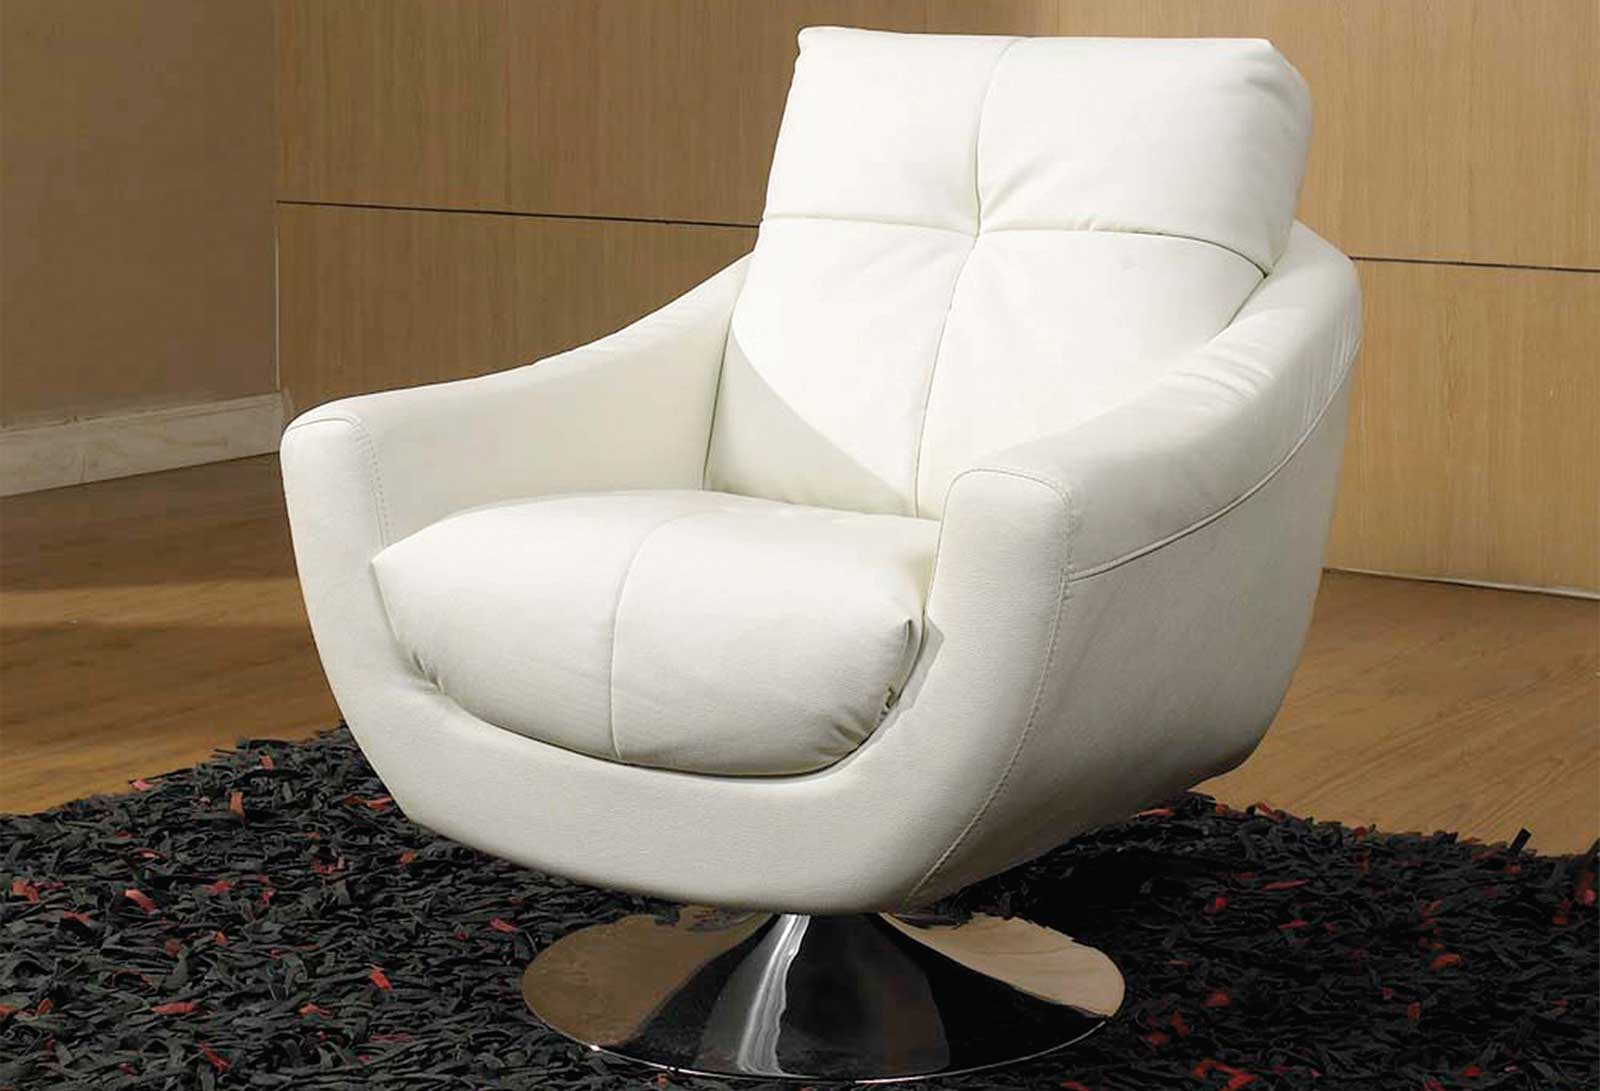 White Modern Chair Leather Swivel Chairs For Home Office User